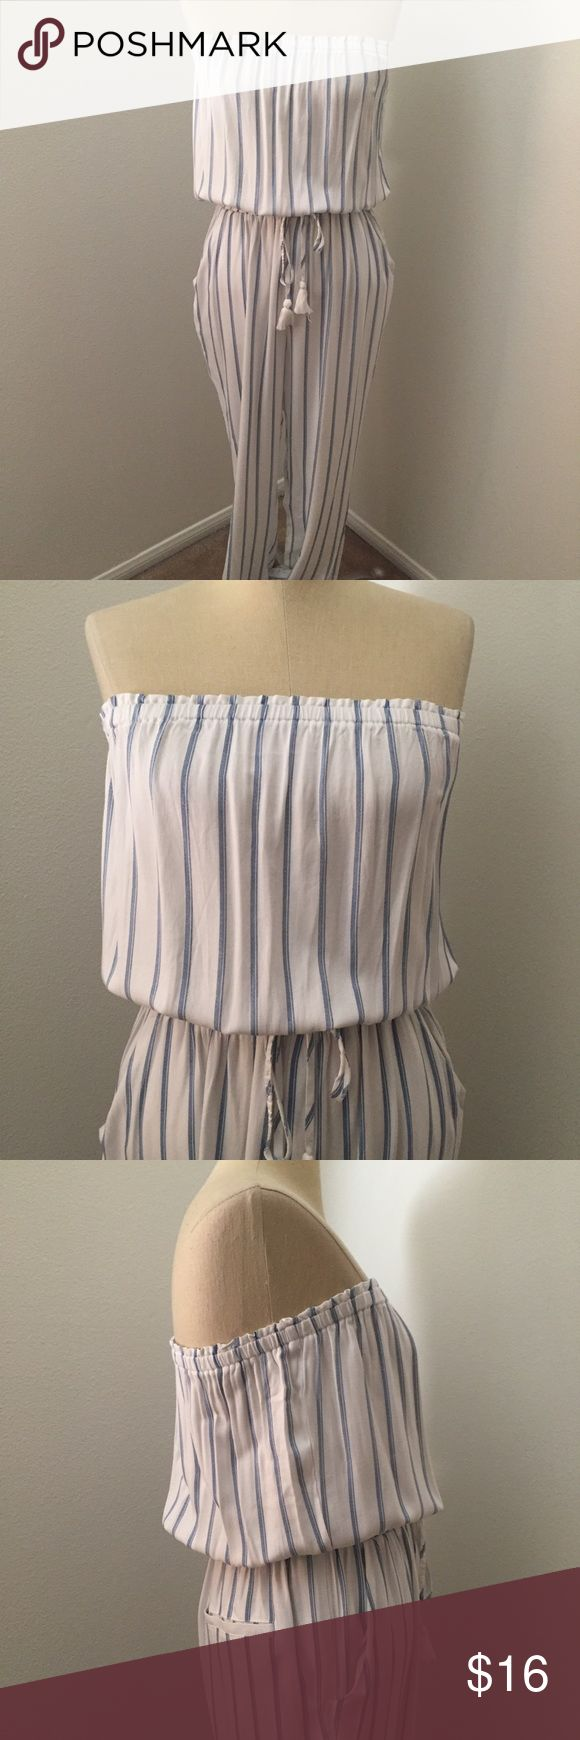 Forever 21 striped jumper Forever 21 white and blue striped jumper. Drawstring waist with tassels, pockets on side and back. Slim leg with elastic band at ankles. Never worn, too big for me. :( Forever 21 Pants Jumpsuits & Rompers